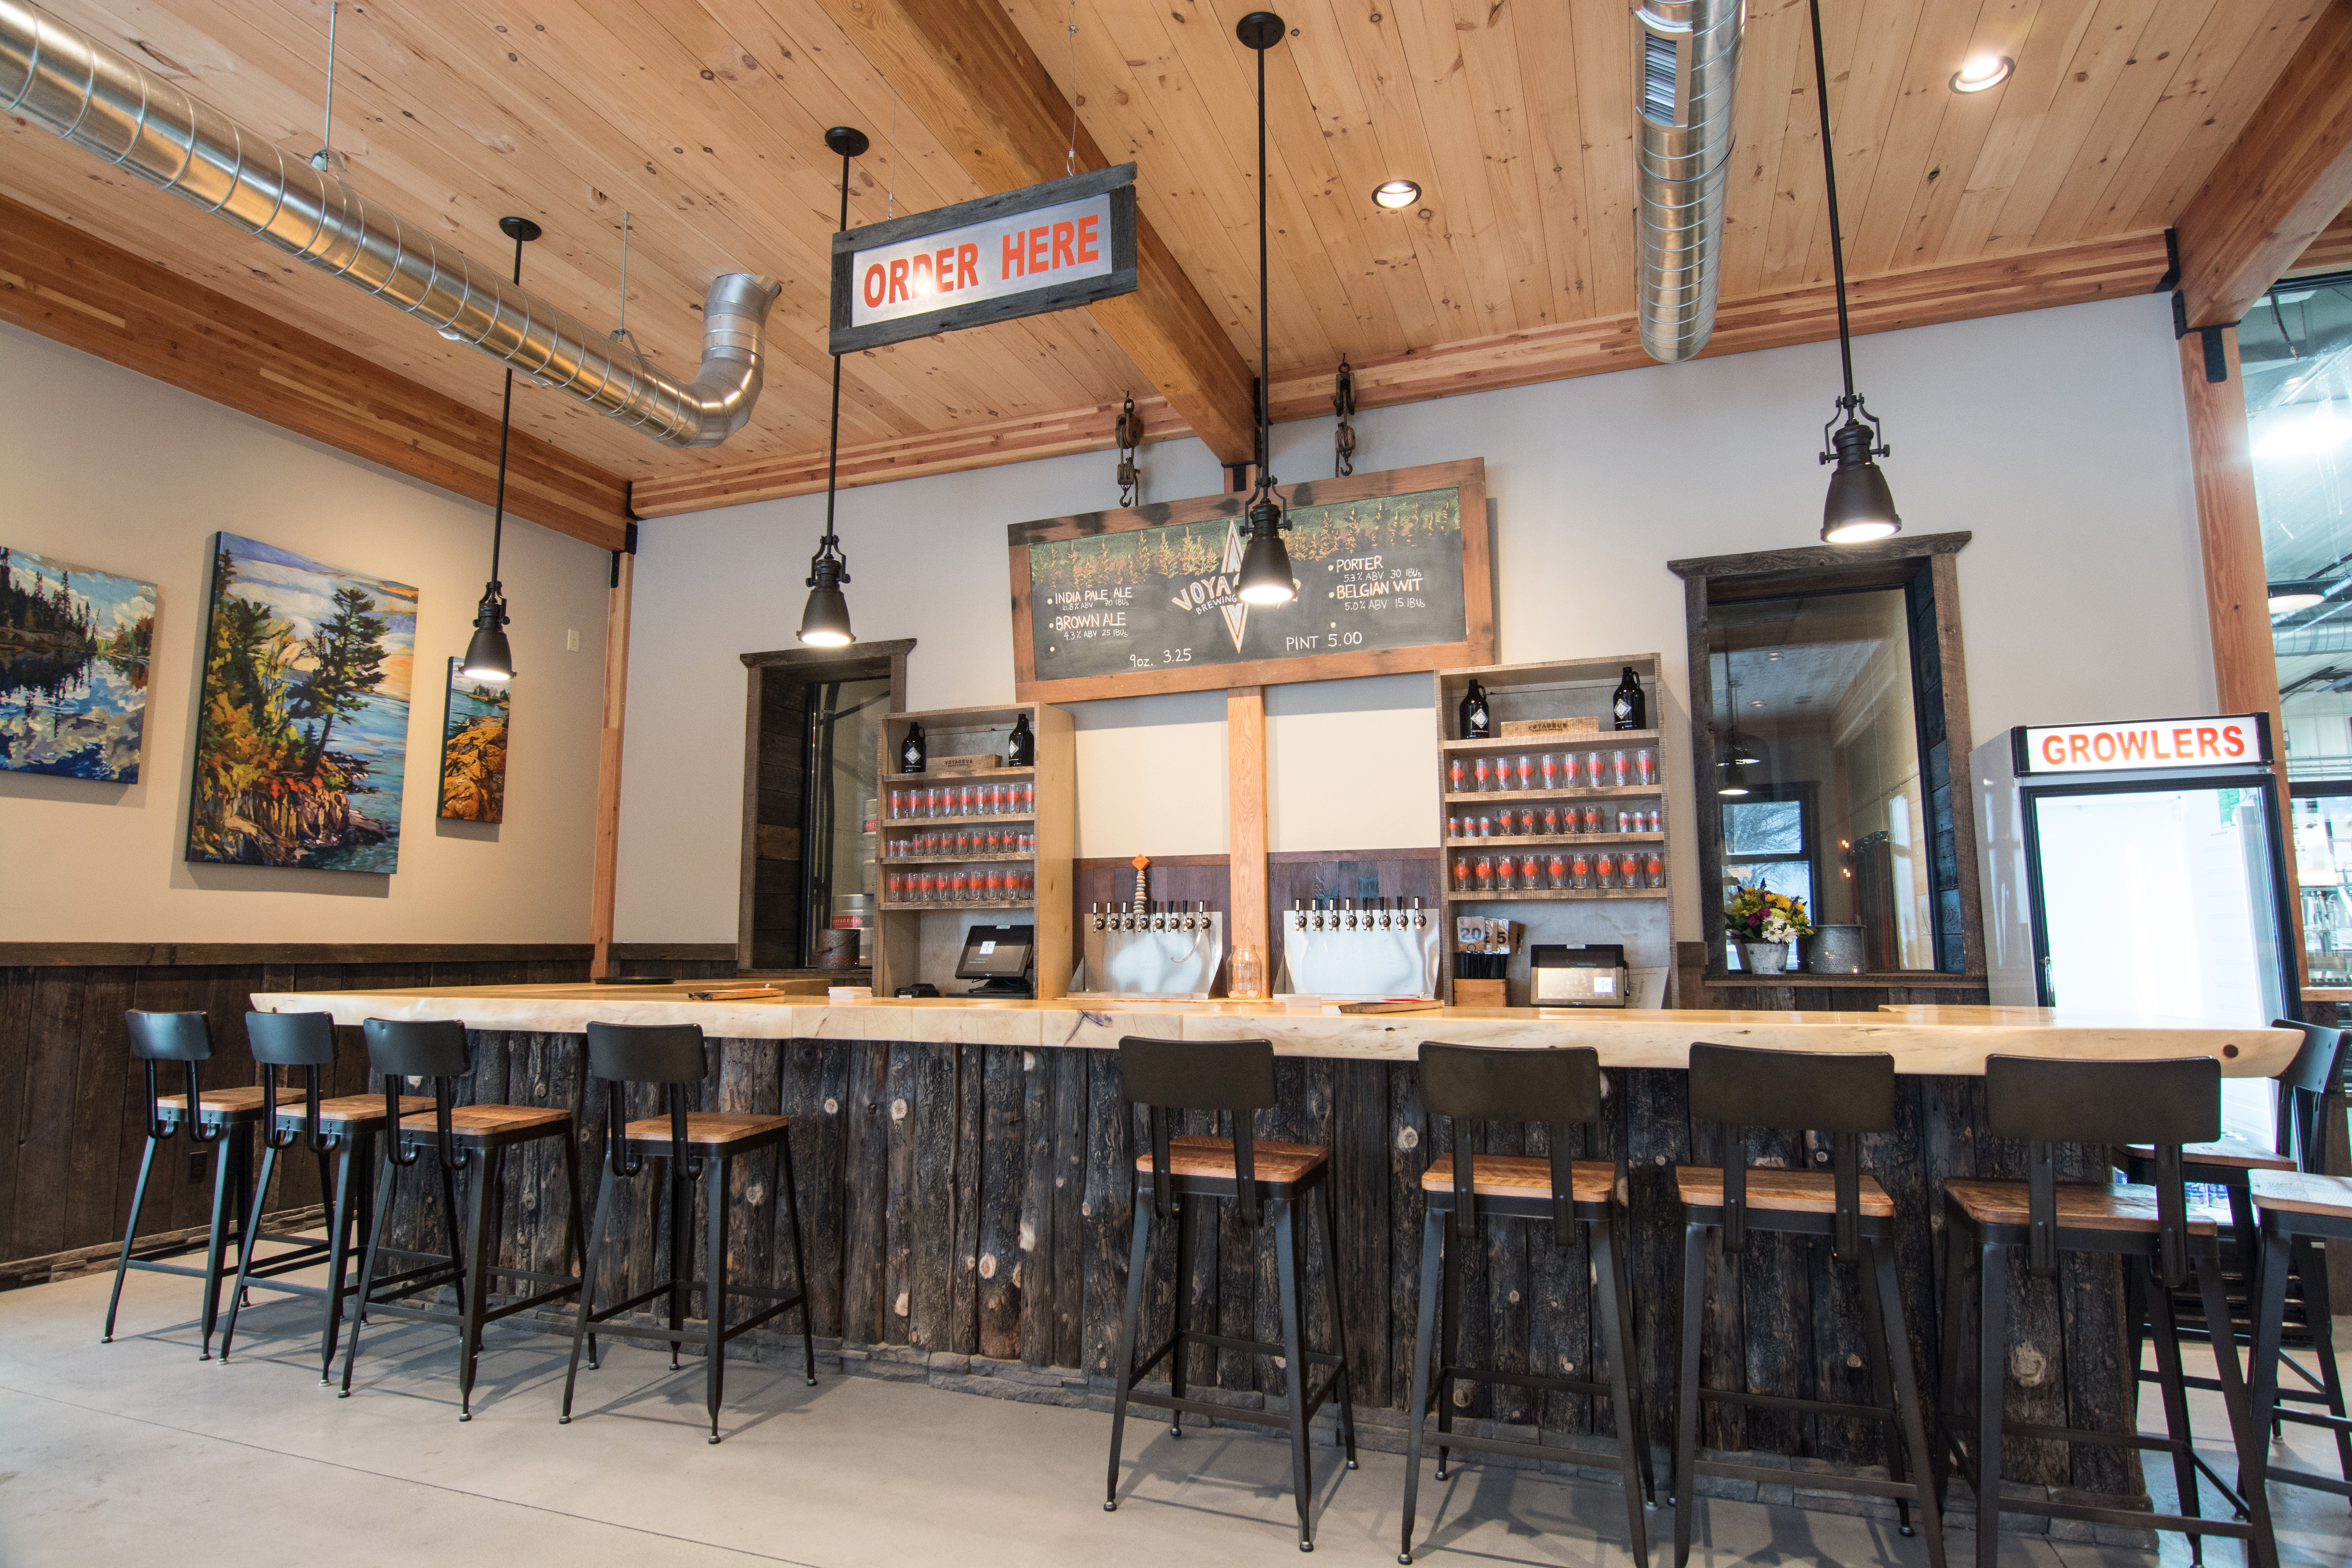 Grand Marais, Minnnesota's craft brewery on the shore of Lake Superior